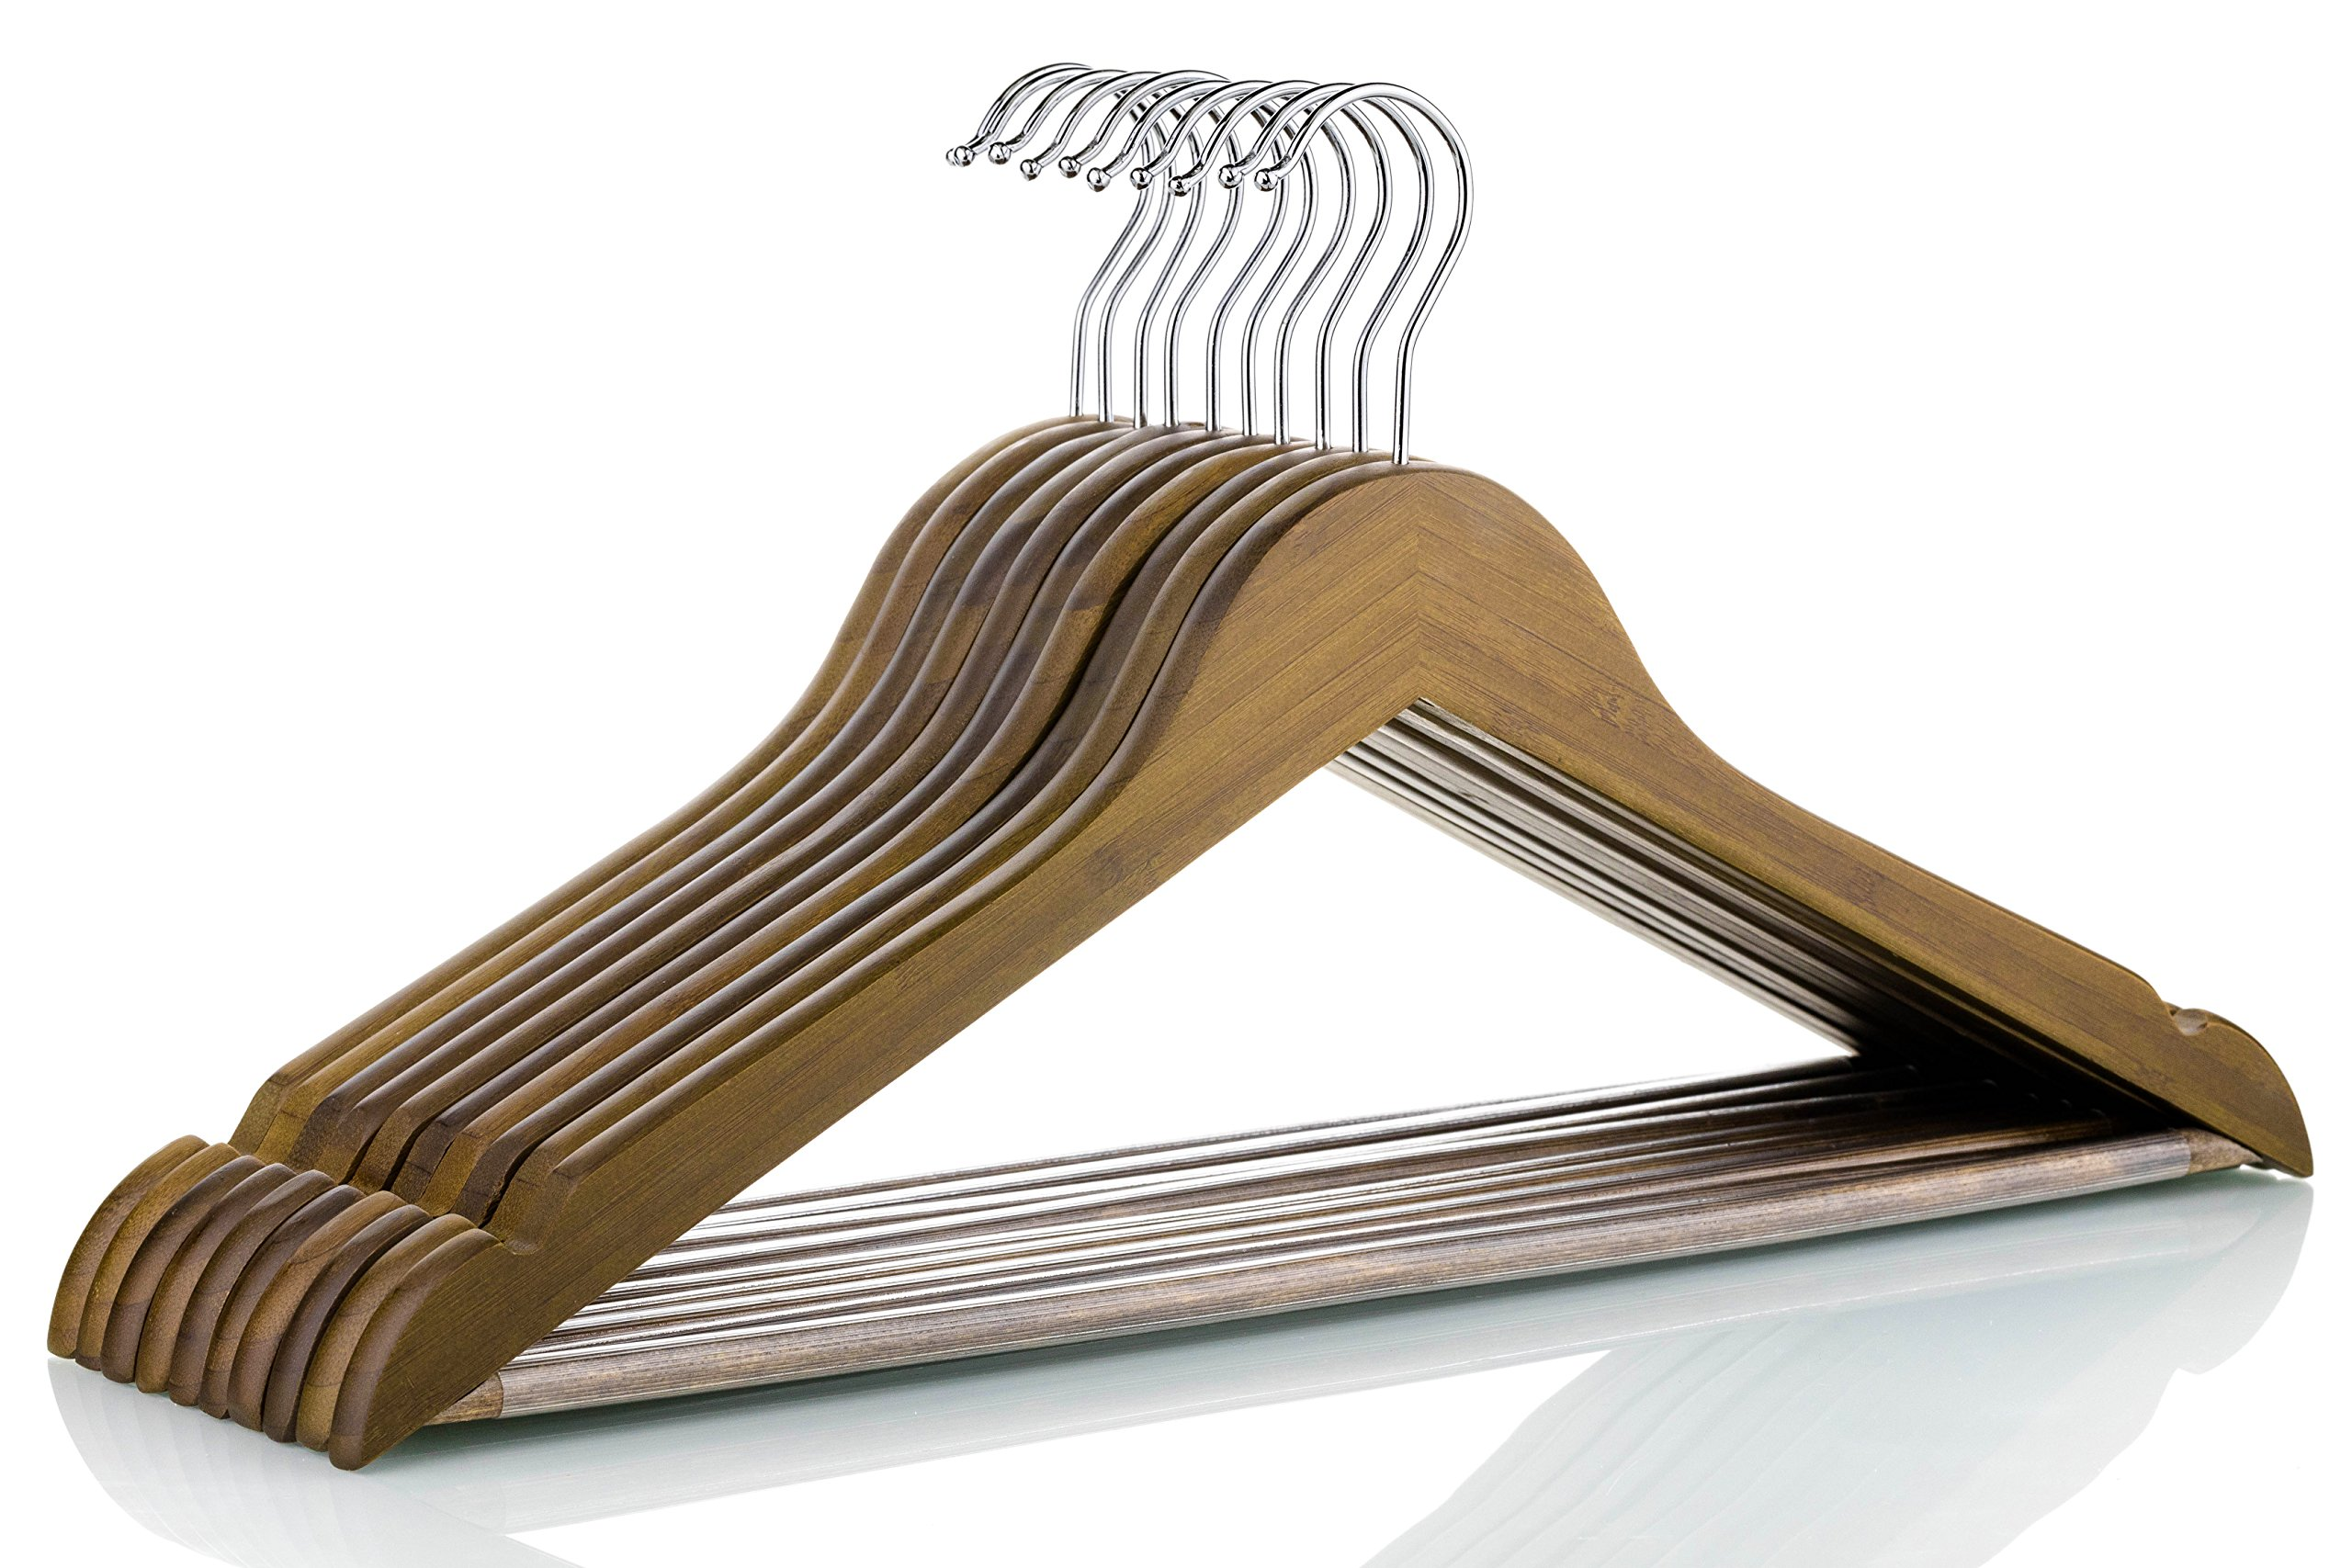 Neaties Bamboo Walnut Wood Hangers with Notches and Non-Slip Bar, 24pk by Neaties (Image #2)